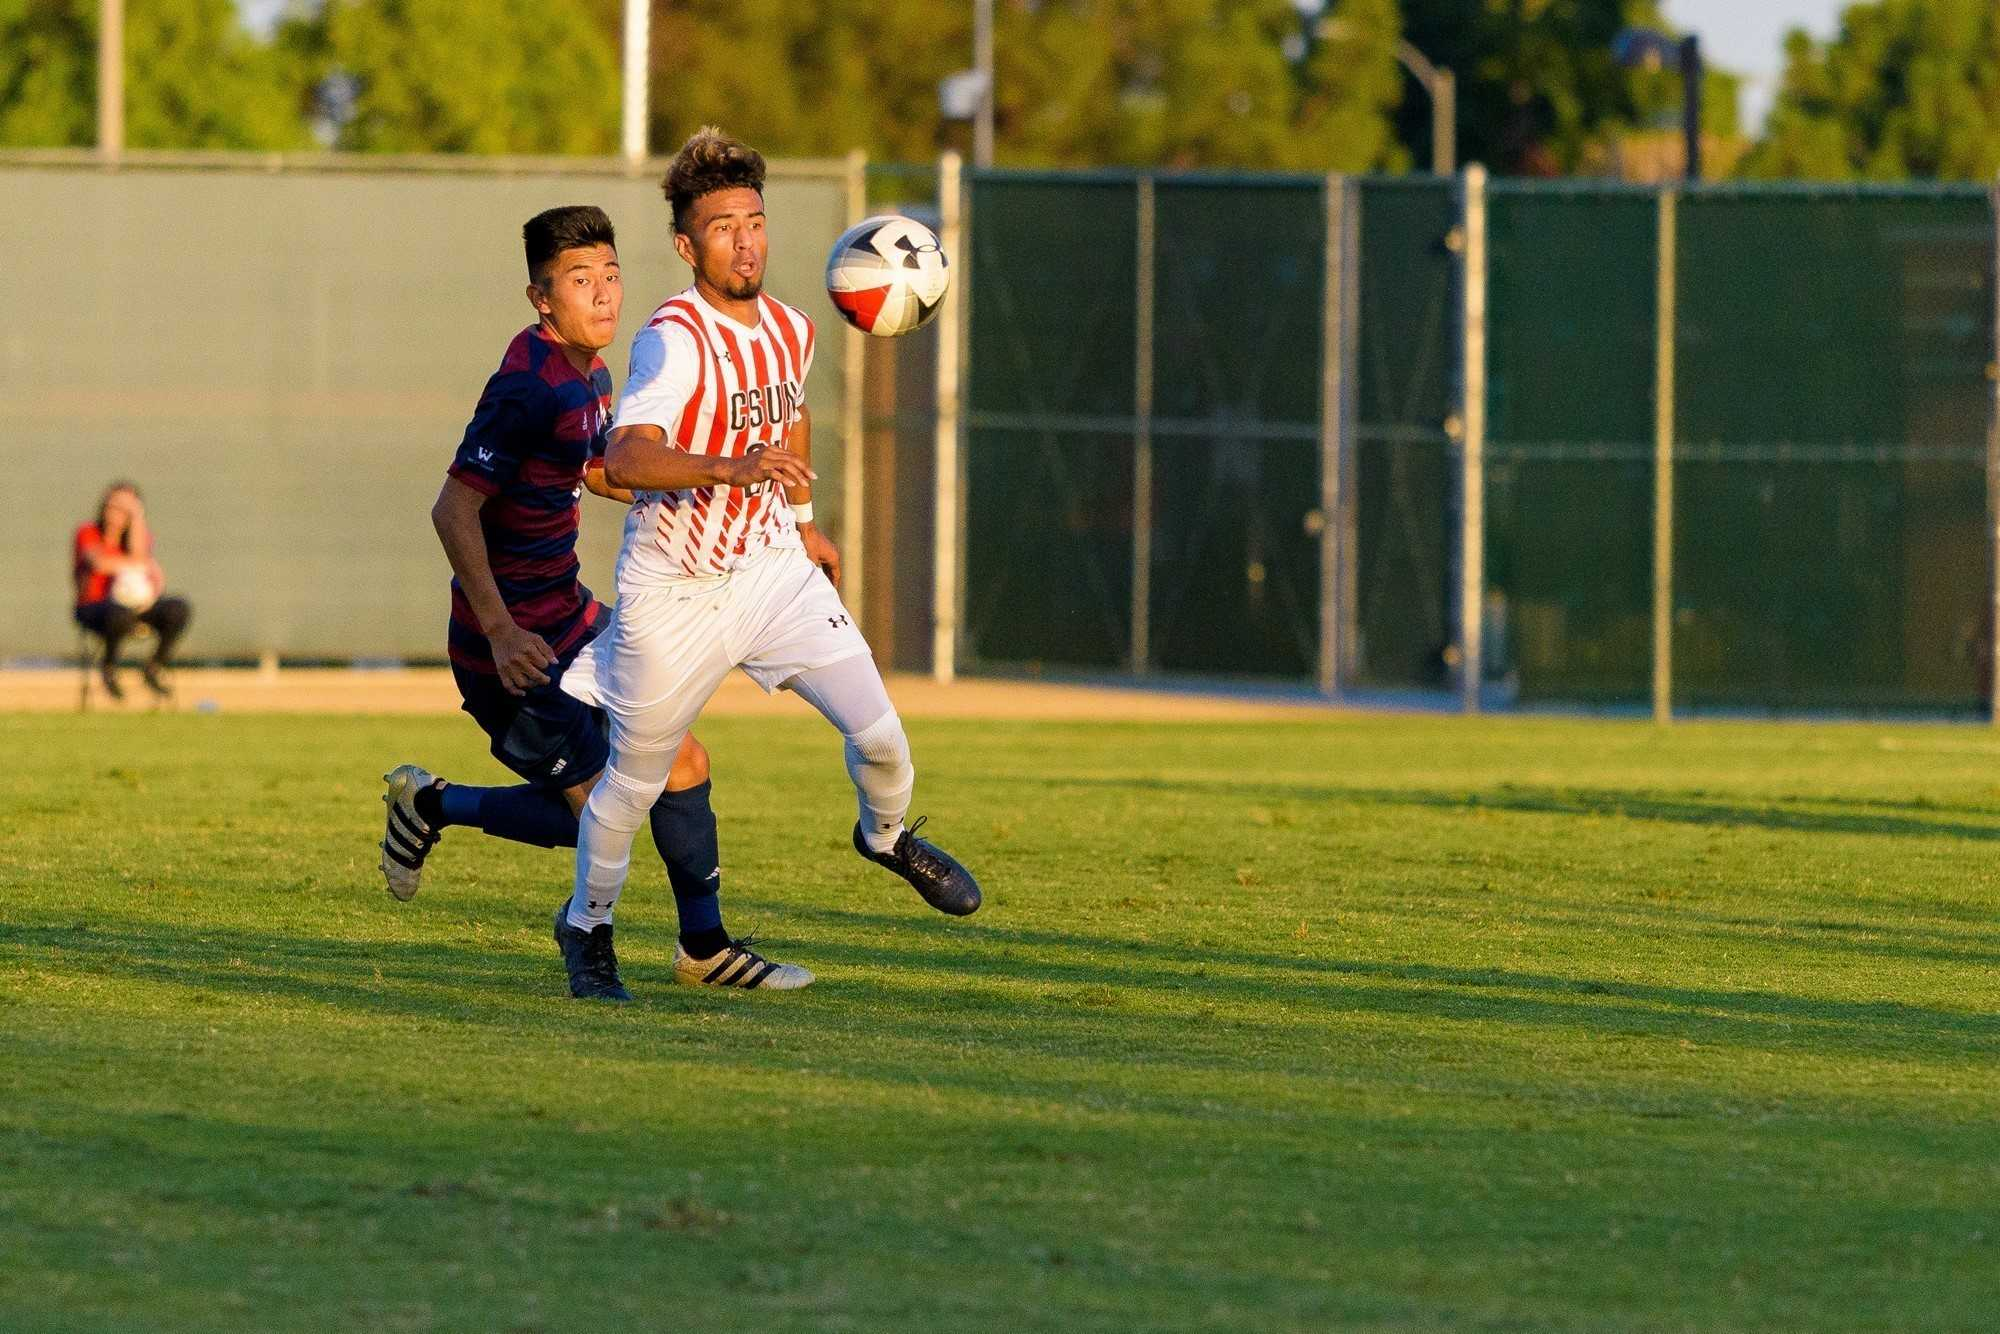 Danny Trejo will look to keep the momentum going on the road against New Mexico on Sept. 8th. Photo Credit: GoMatadors